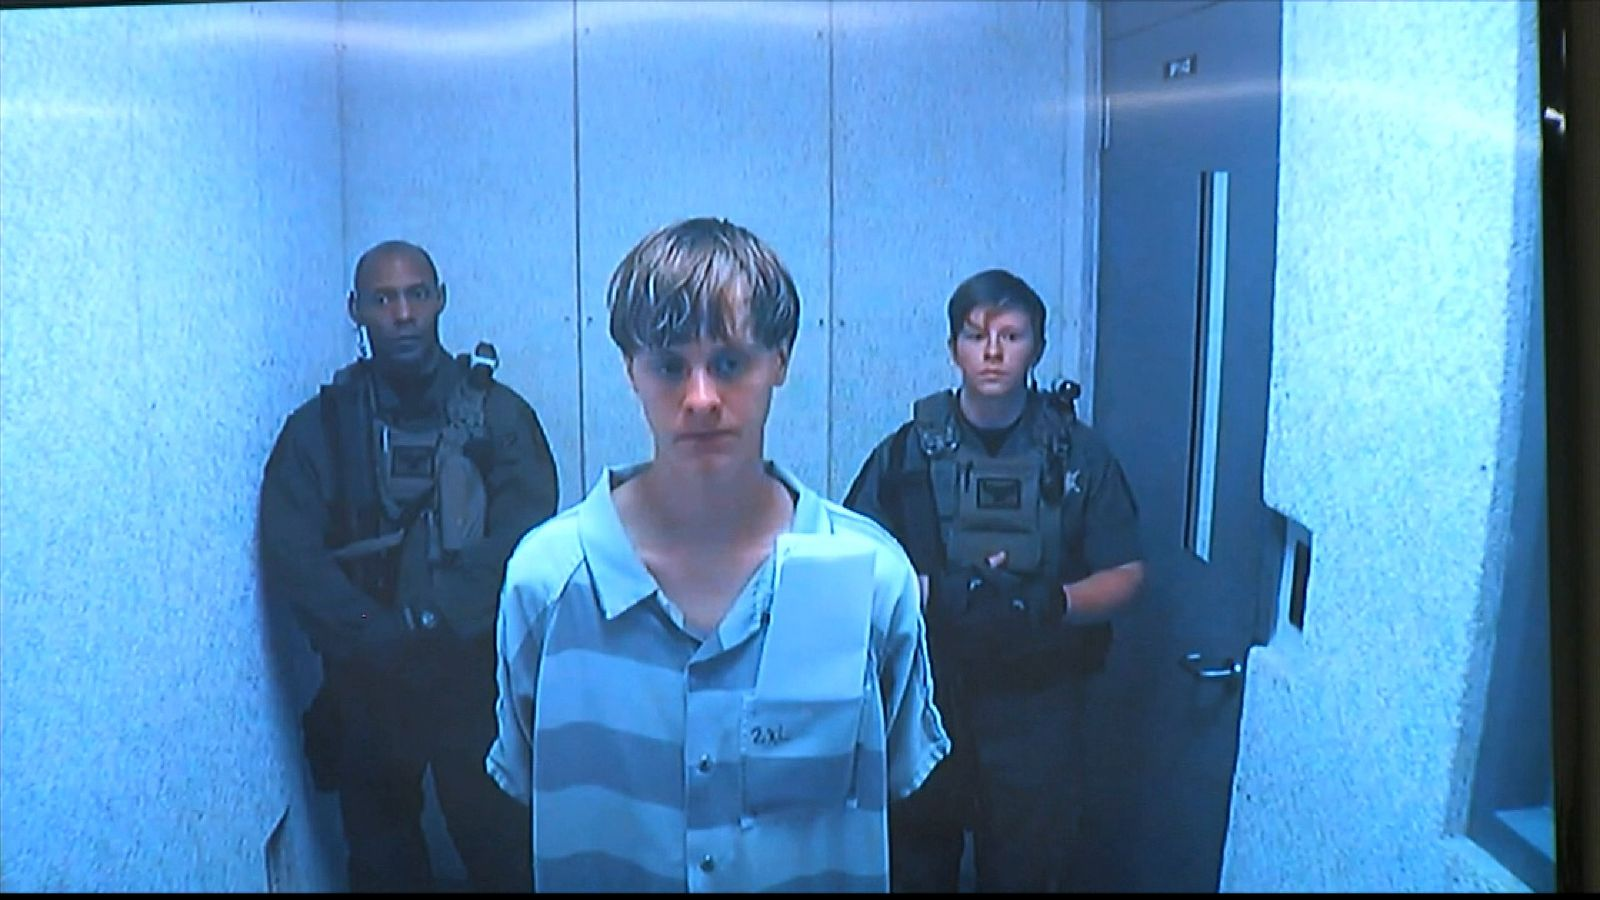 Dylann Roof flanked by two court guards